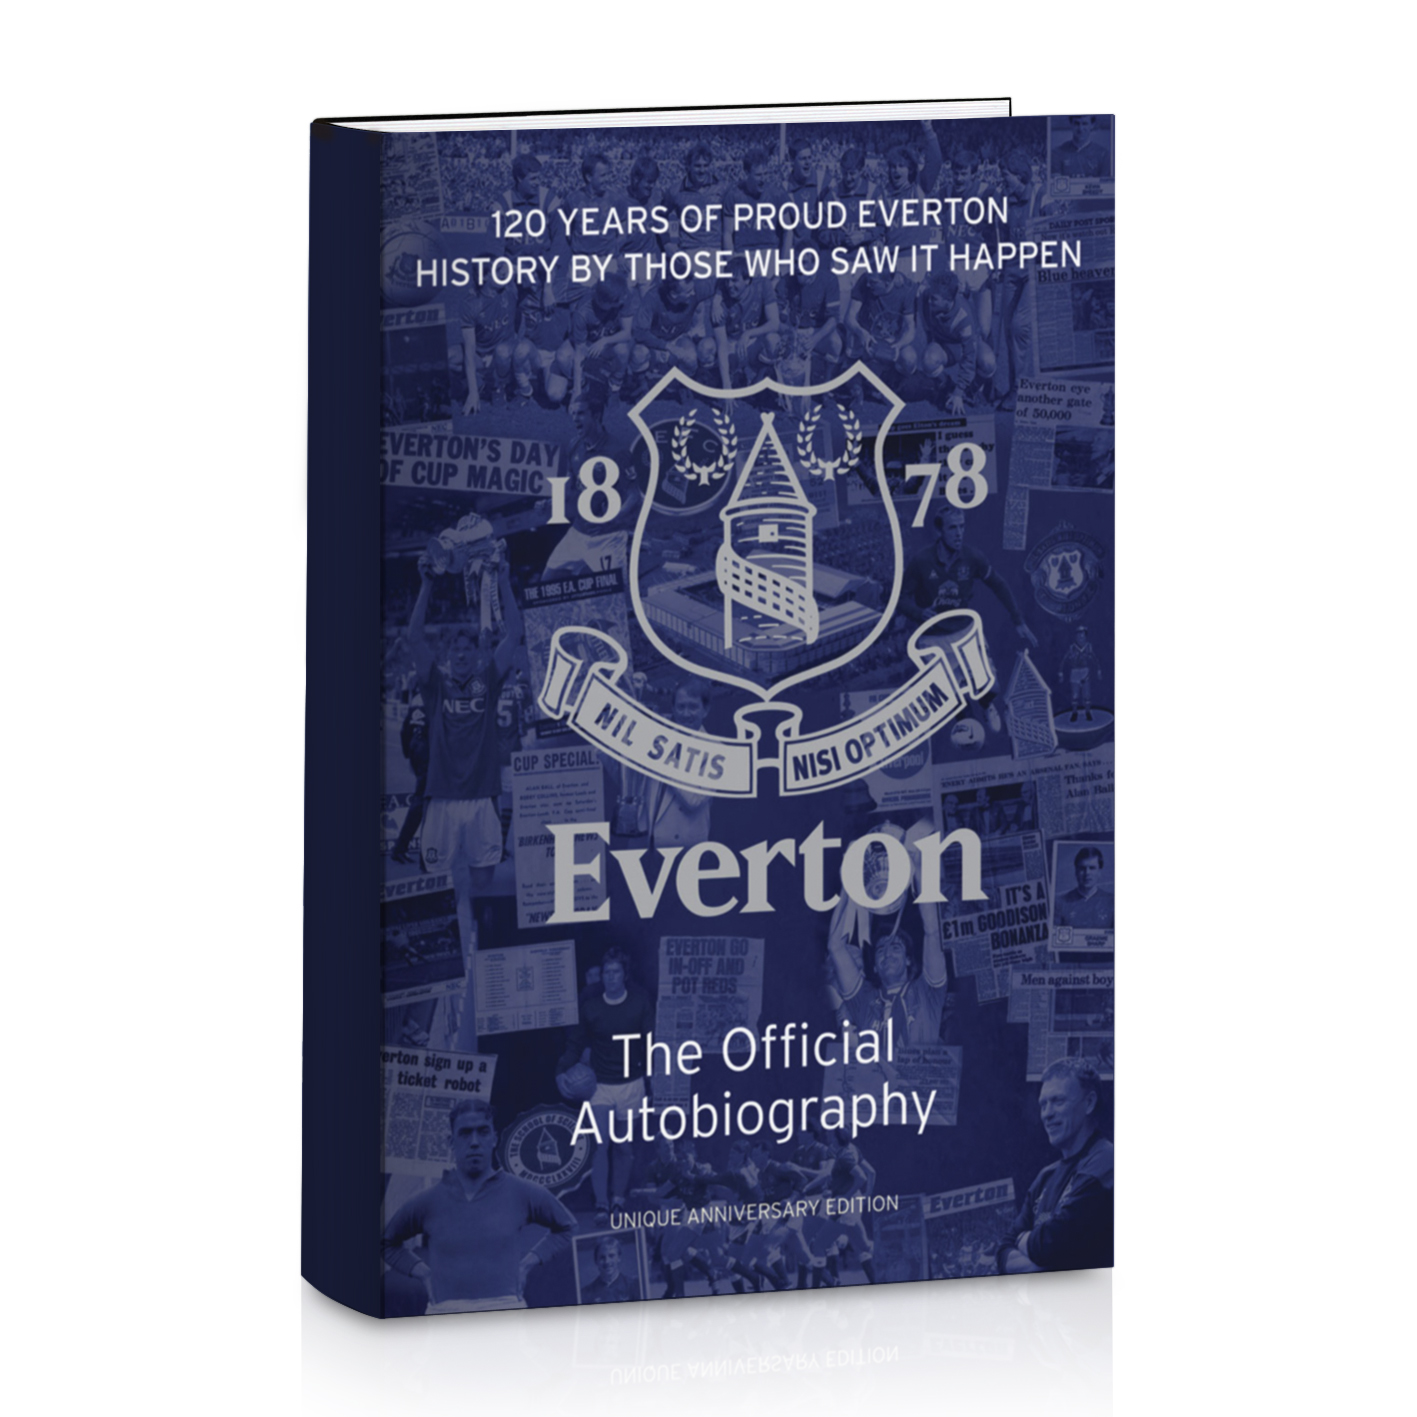 Everton The Official Autobiography